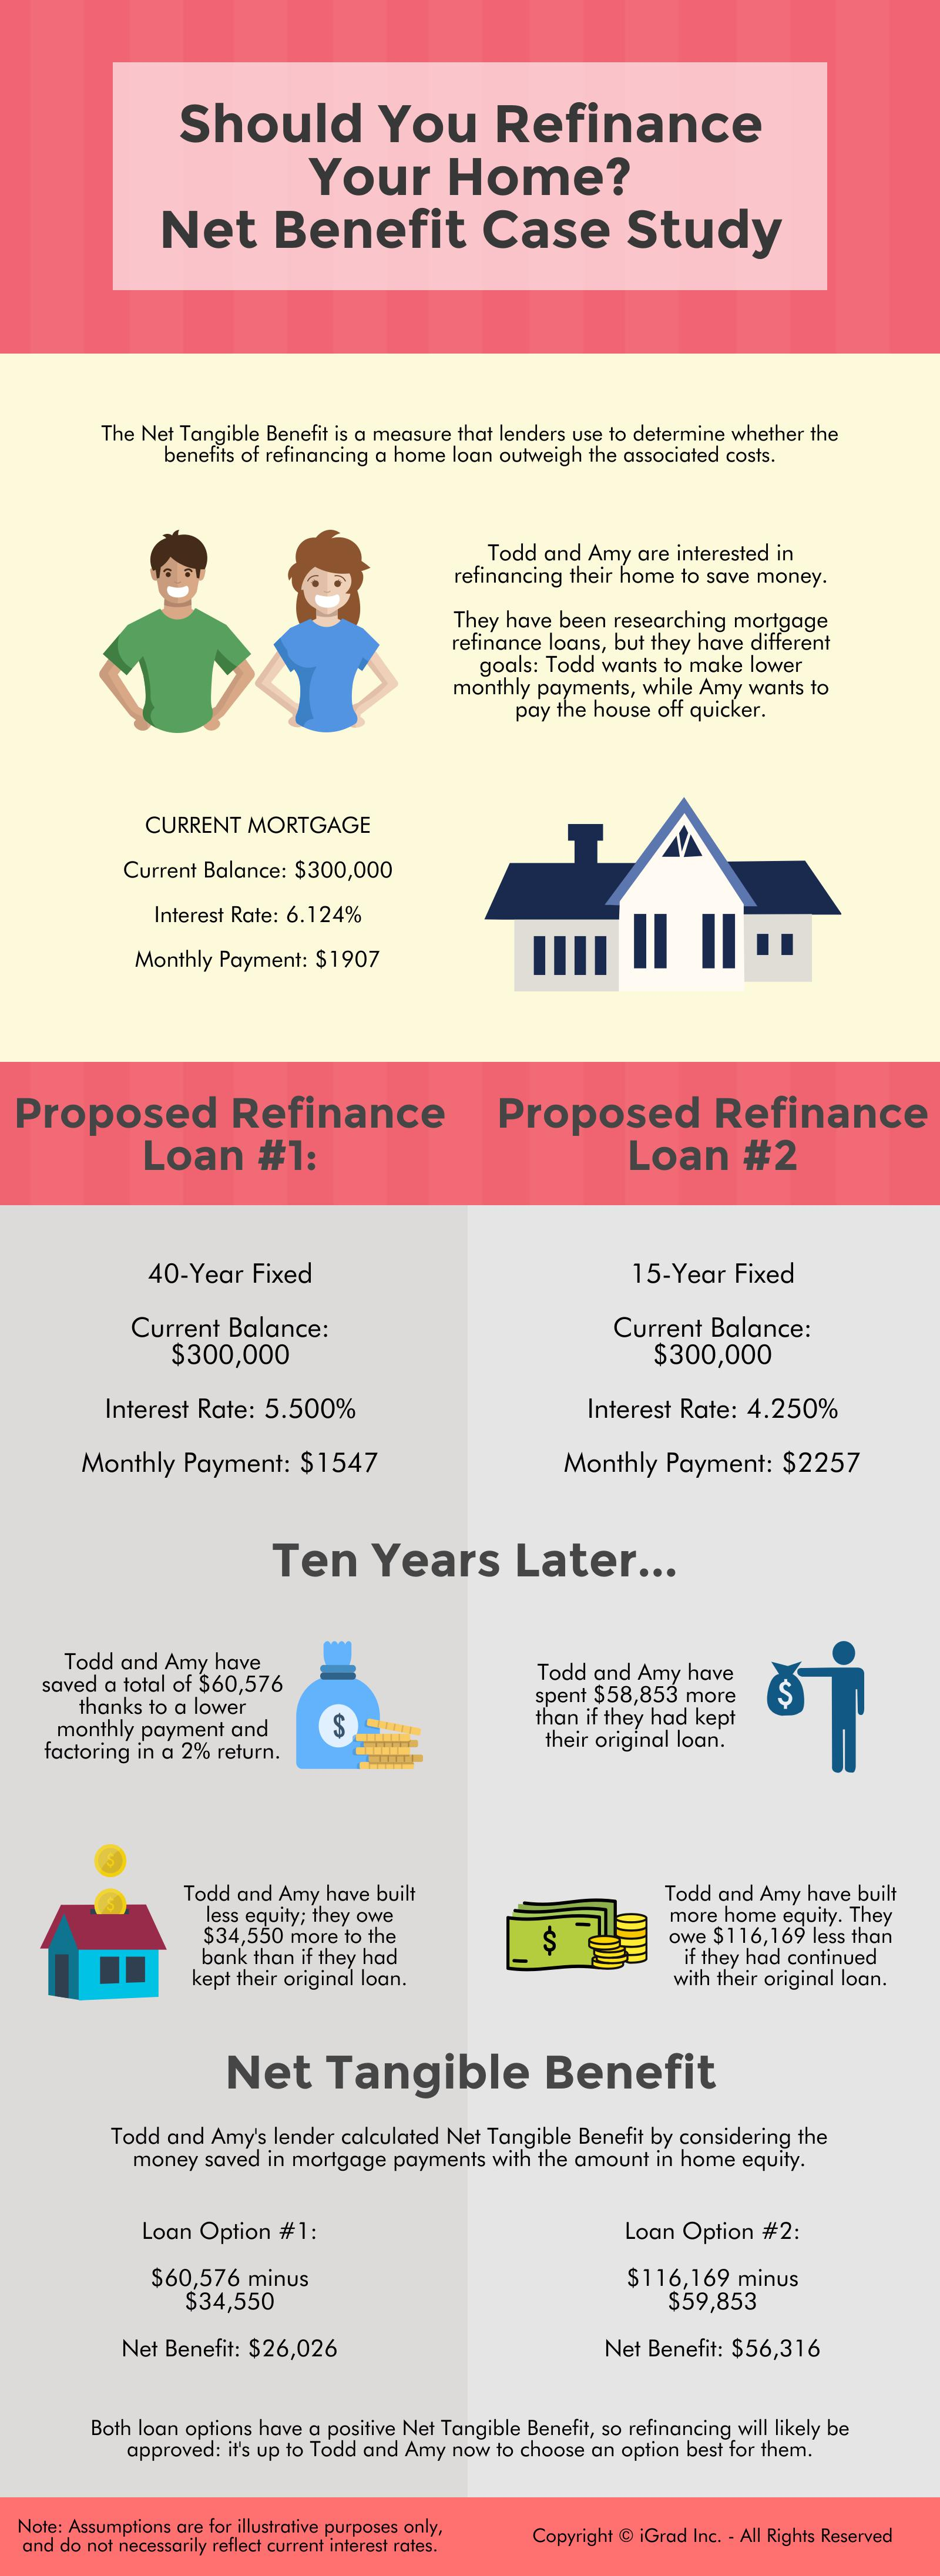 Should You Refinance Your Home? Net Benefit Case Study